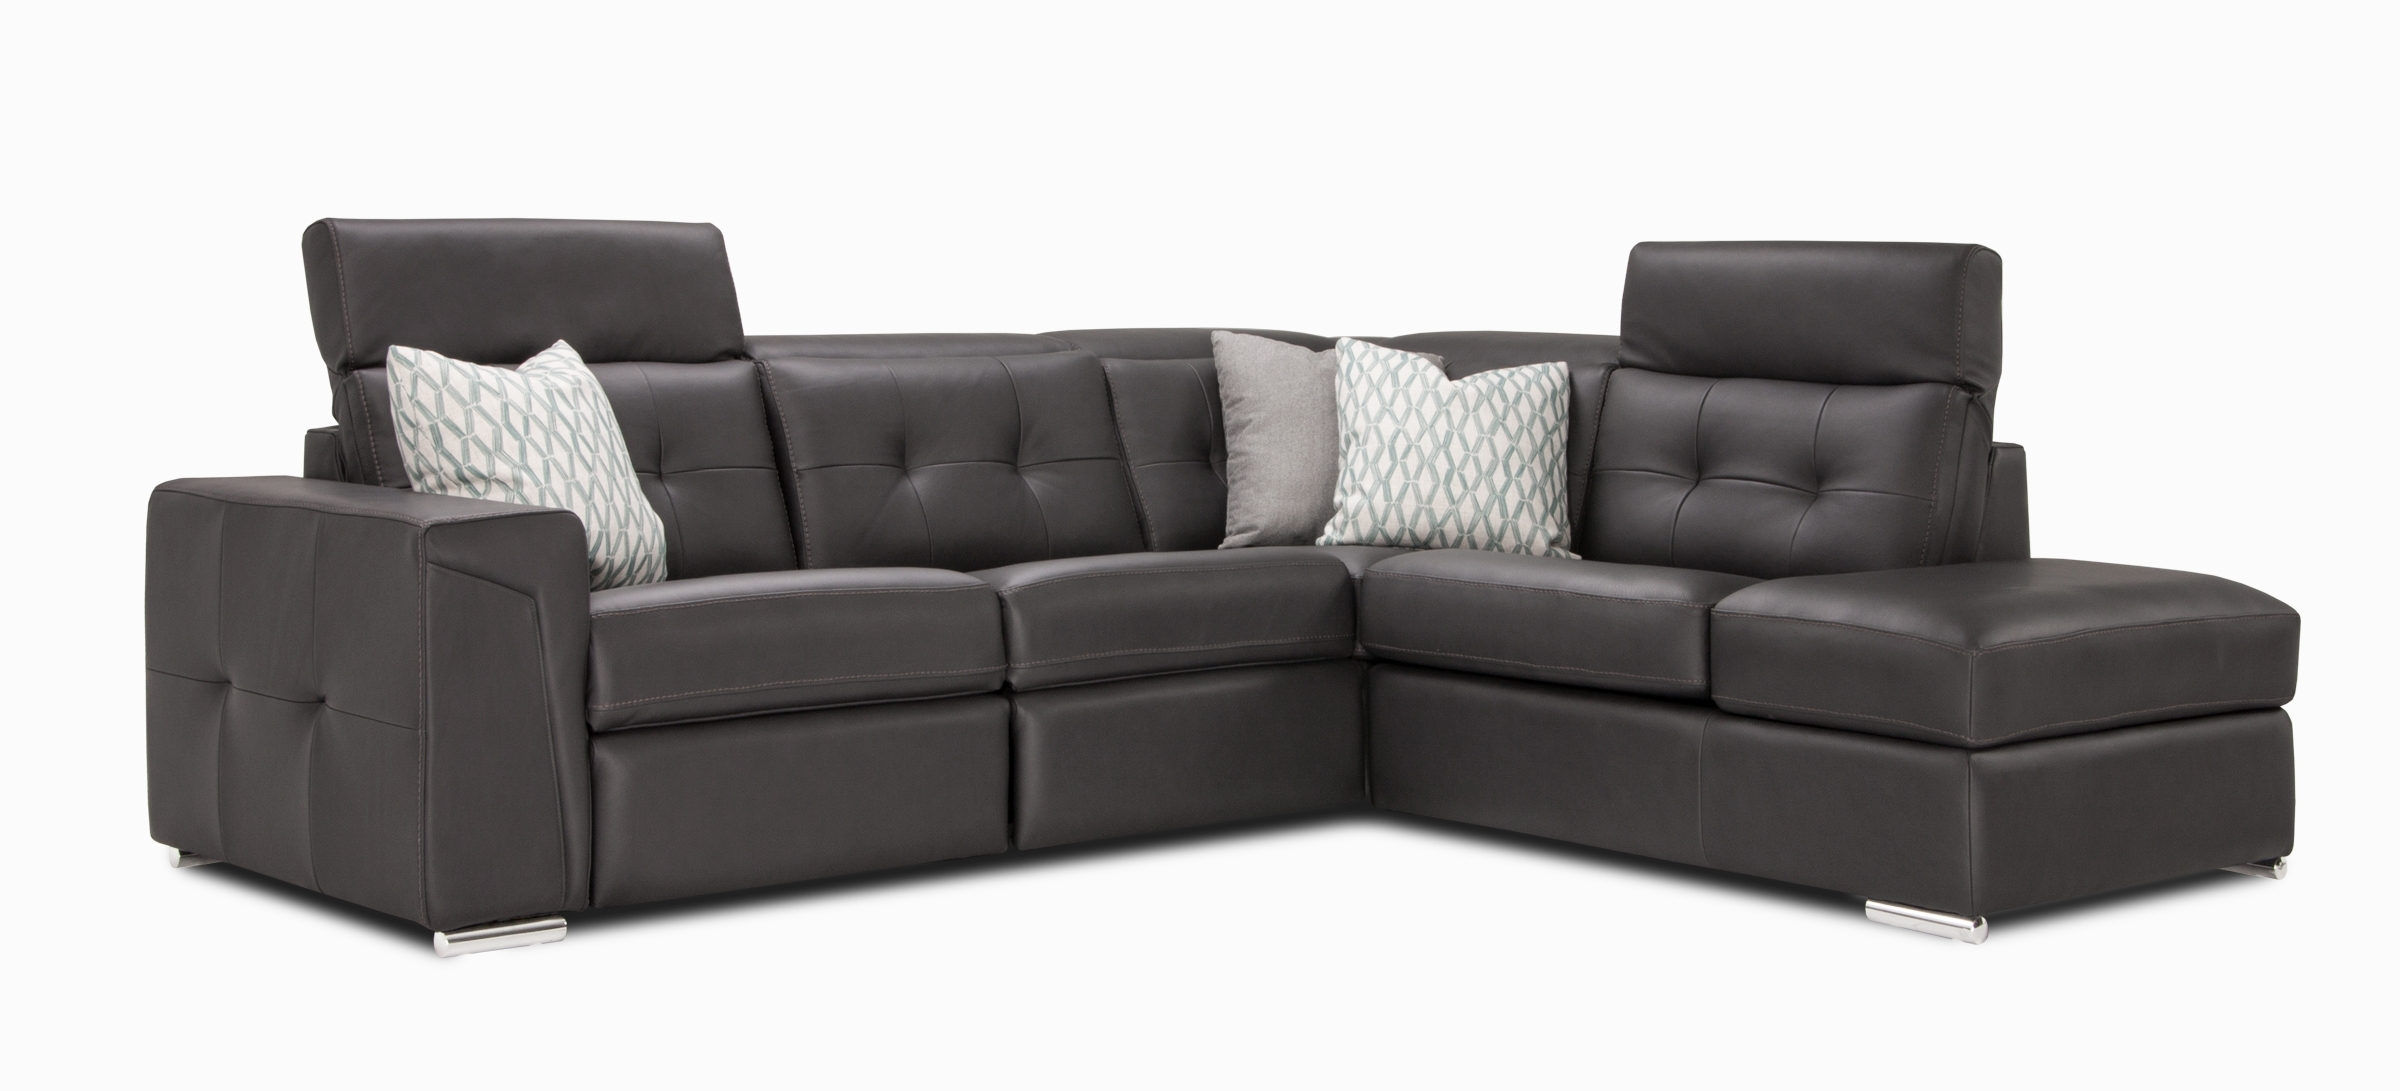 Best And Newest Sydney Sectional Sofas Inside Sectional Sydney – Contemporary Style – Optima Collection (View 18 of 20)